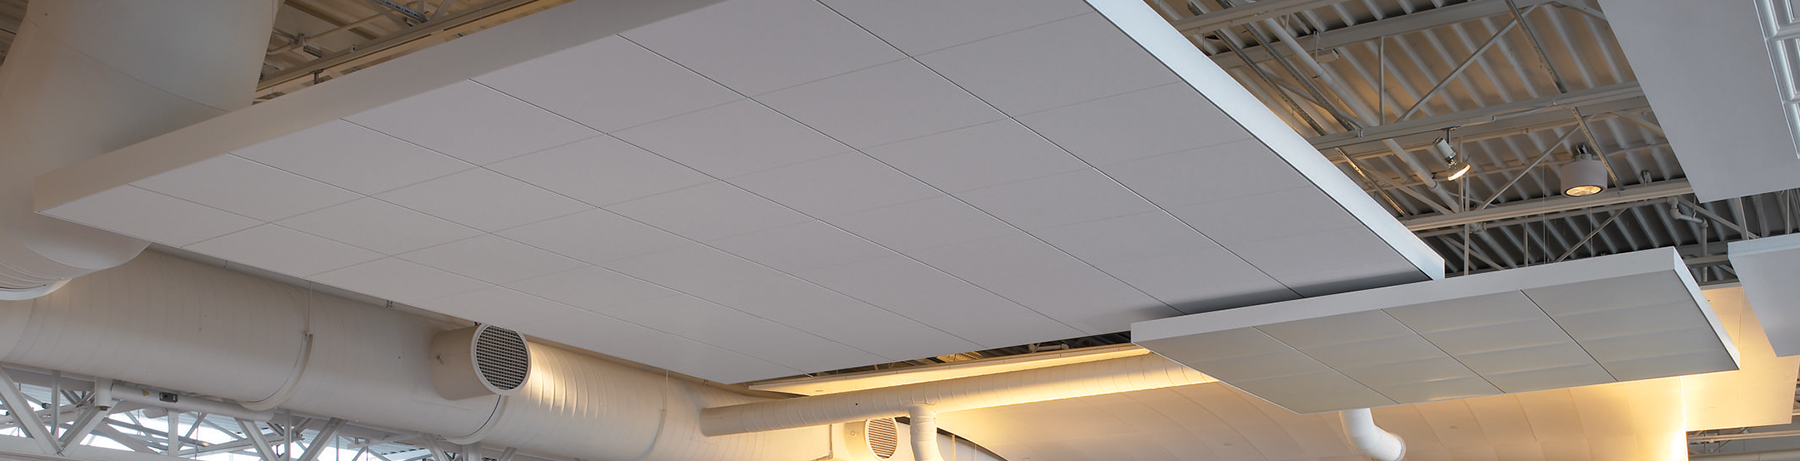 T-Bar Suspension Systems - Ceiling Grid